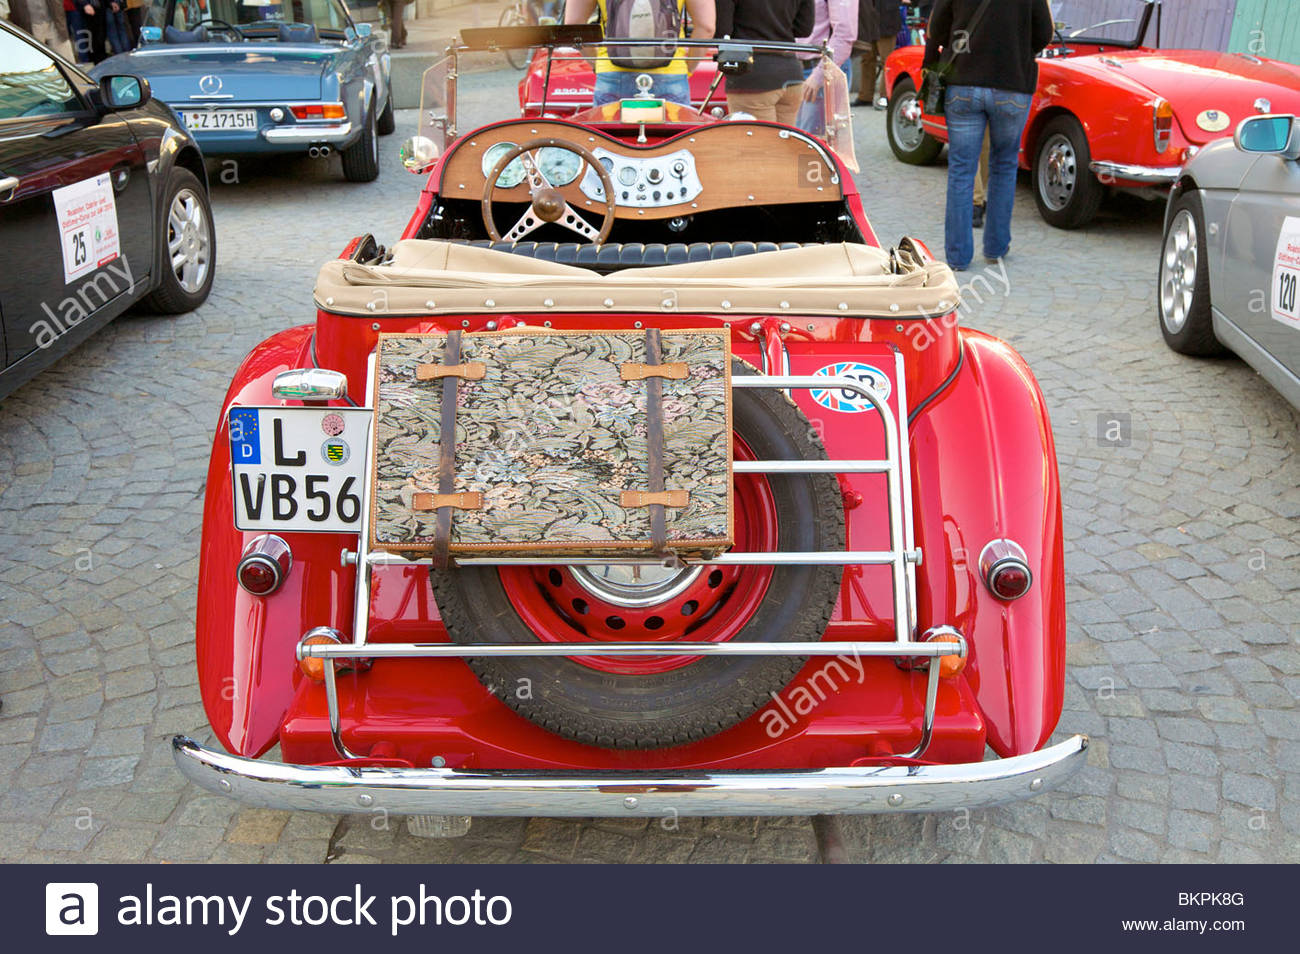 MG T-Type Antique Car from the early 1950's. Taken at a car show in Leipzig, Germany. - Stock Image